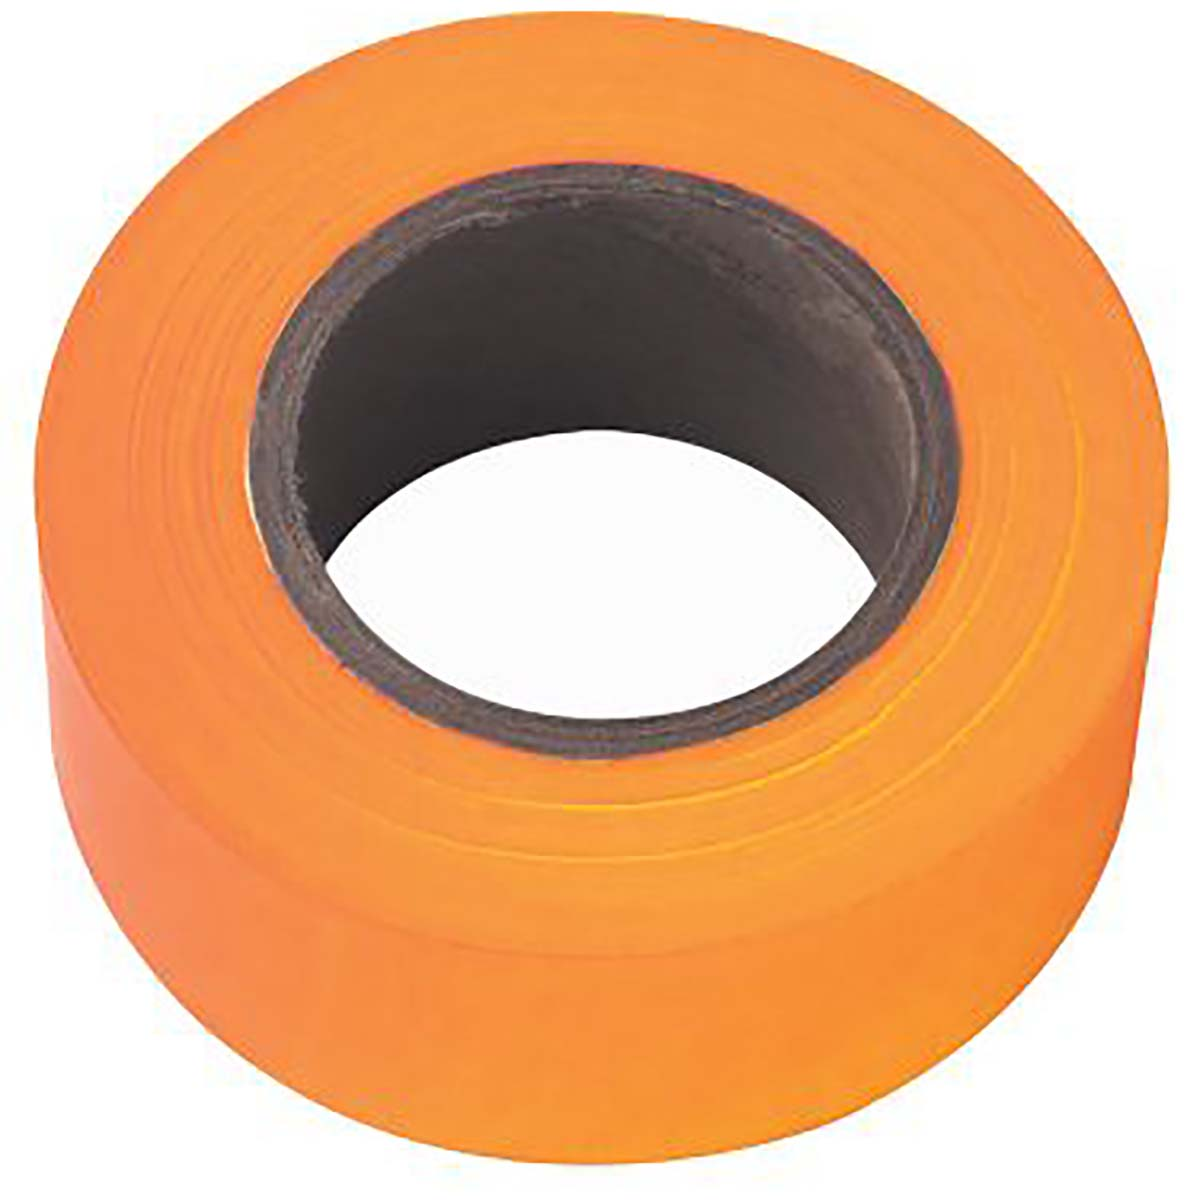 TAPE 150' FLOURESCENT ORANGE FLAGGING